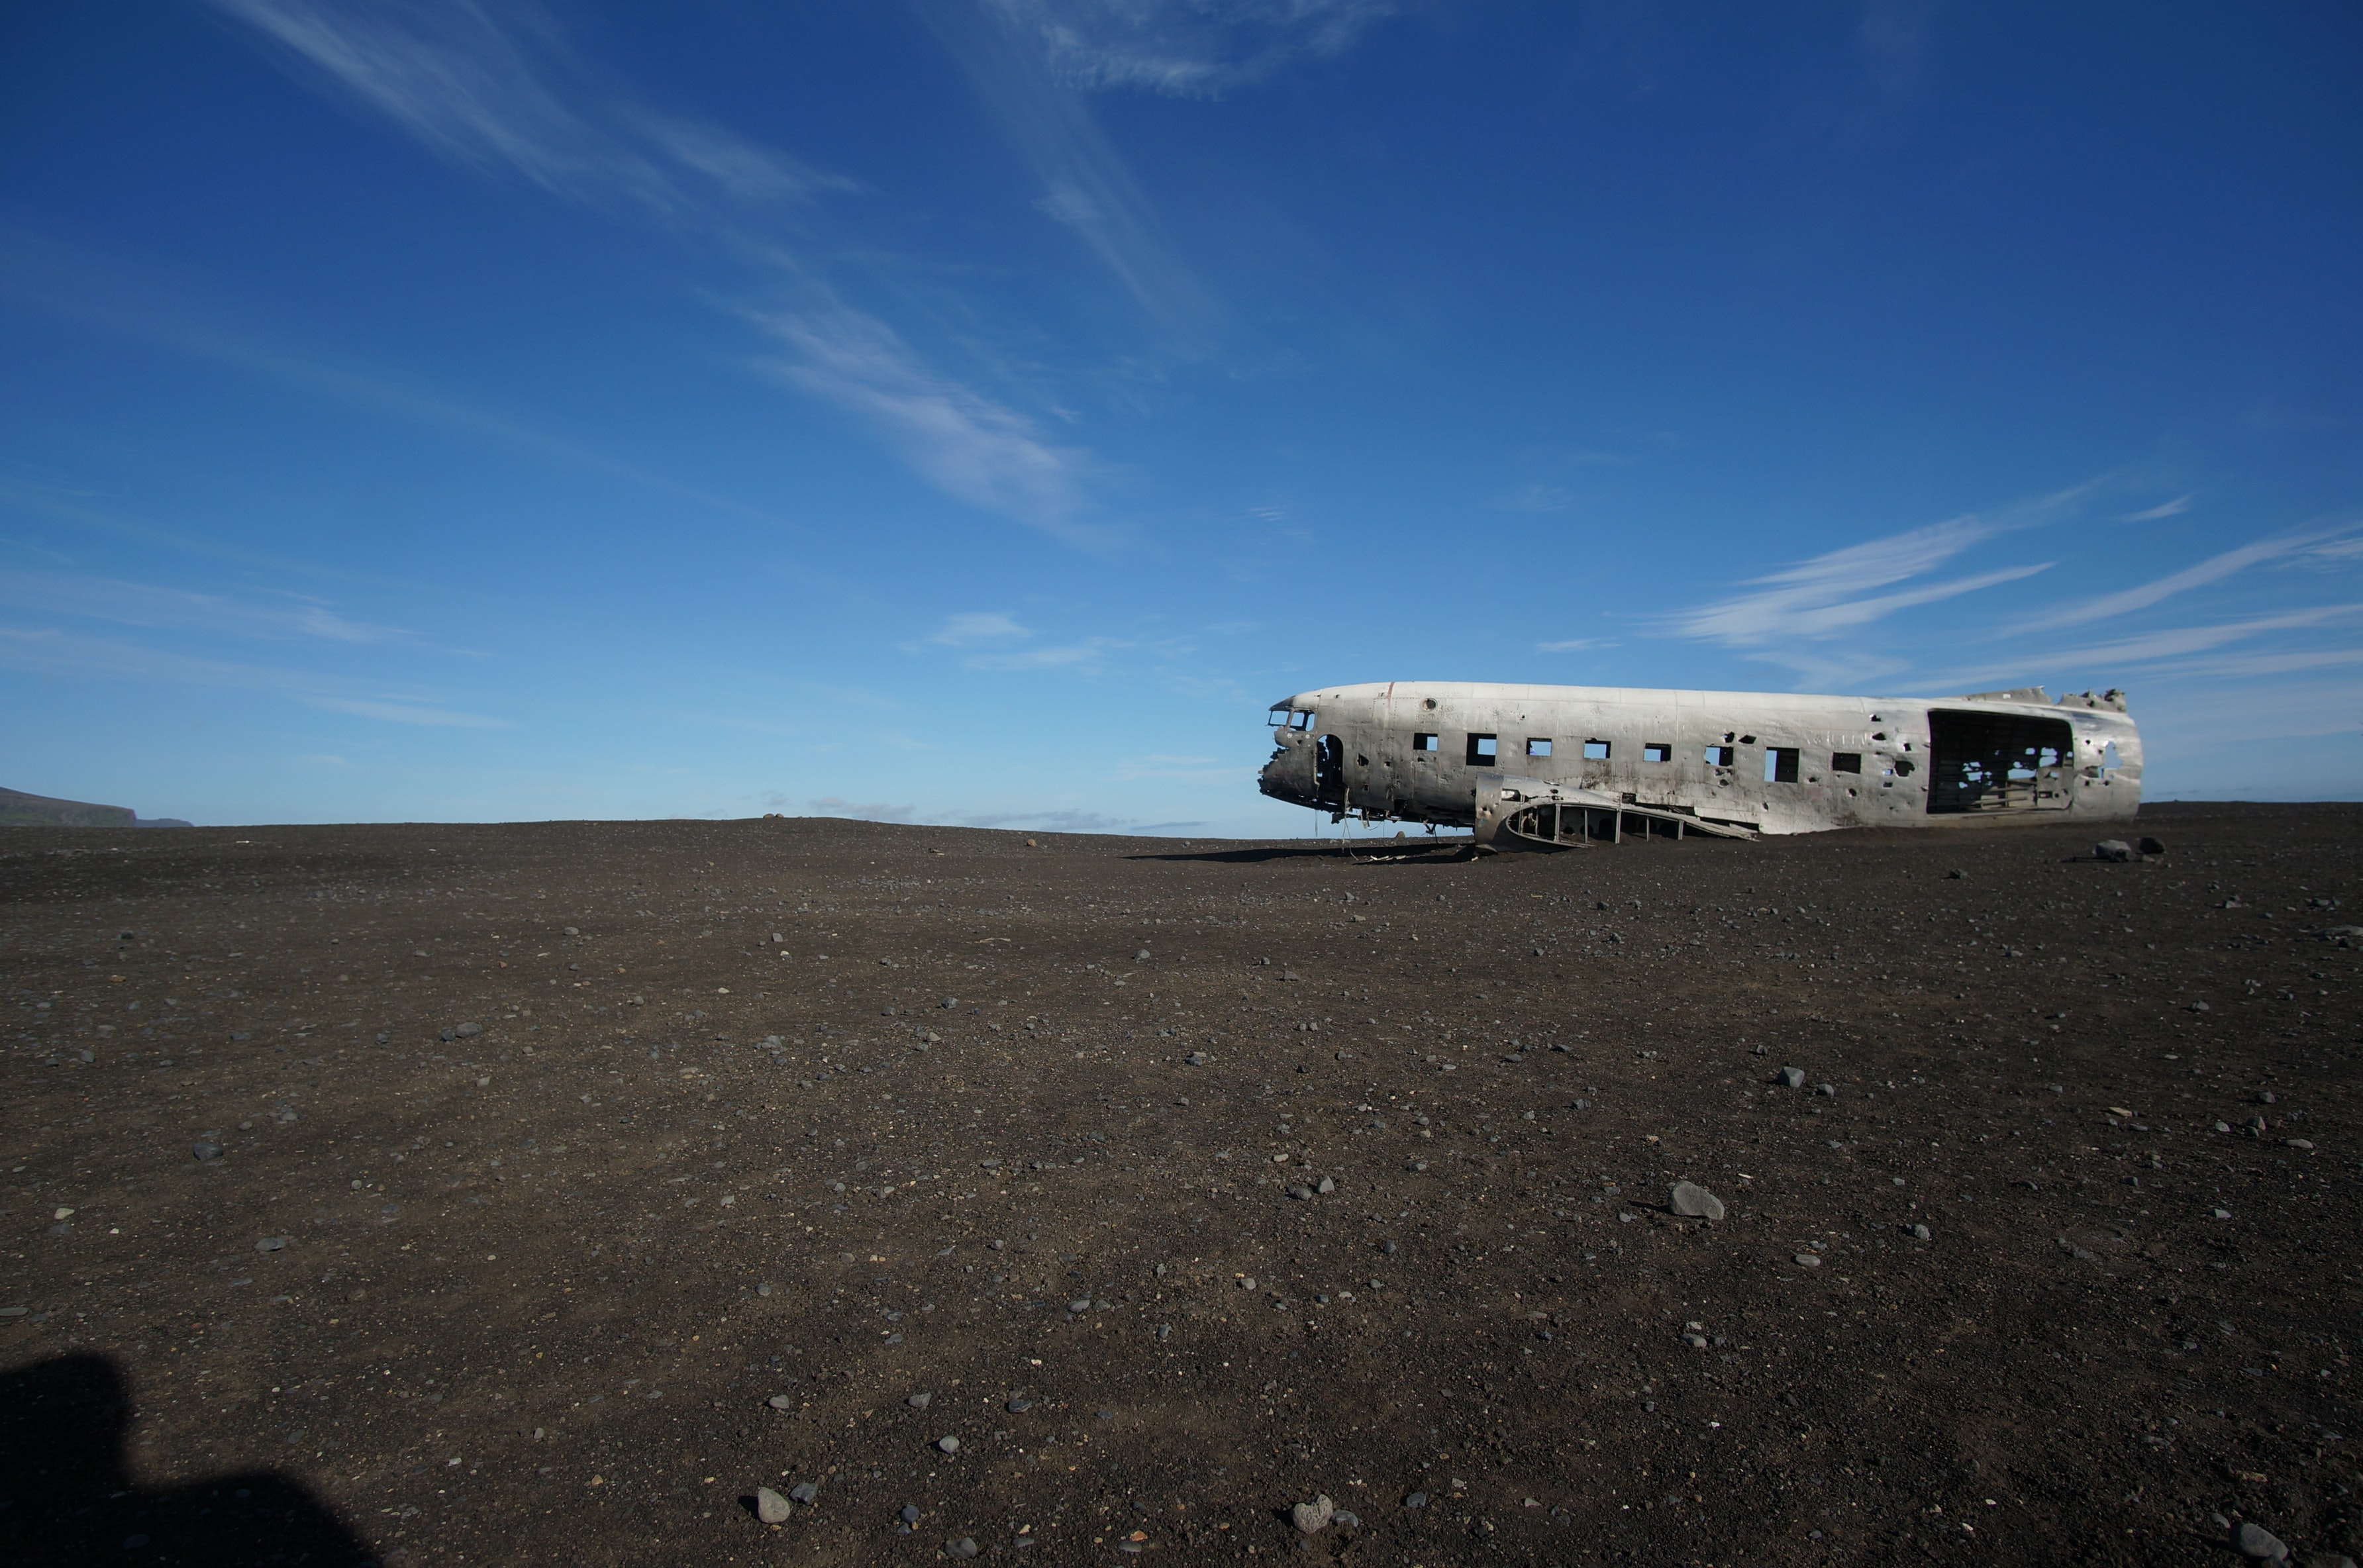 wrecked airplane in deserted location